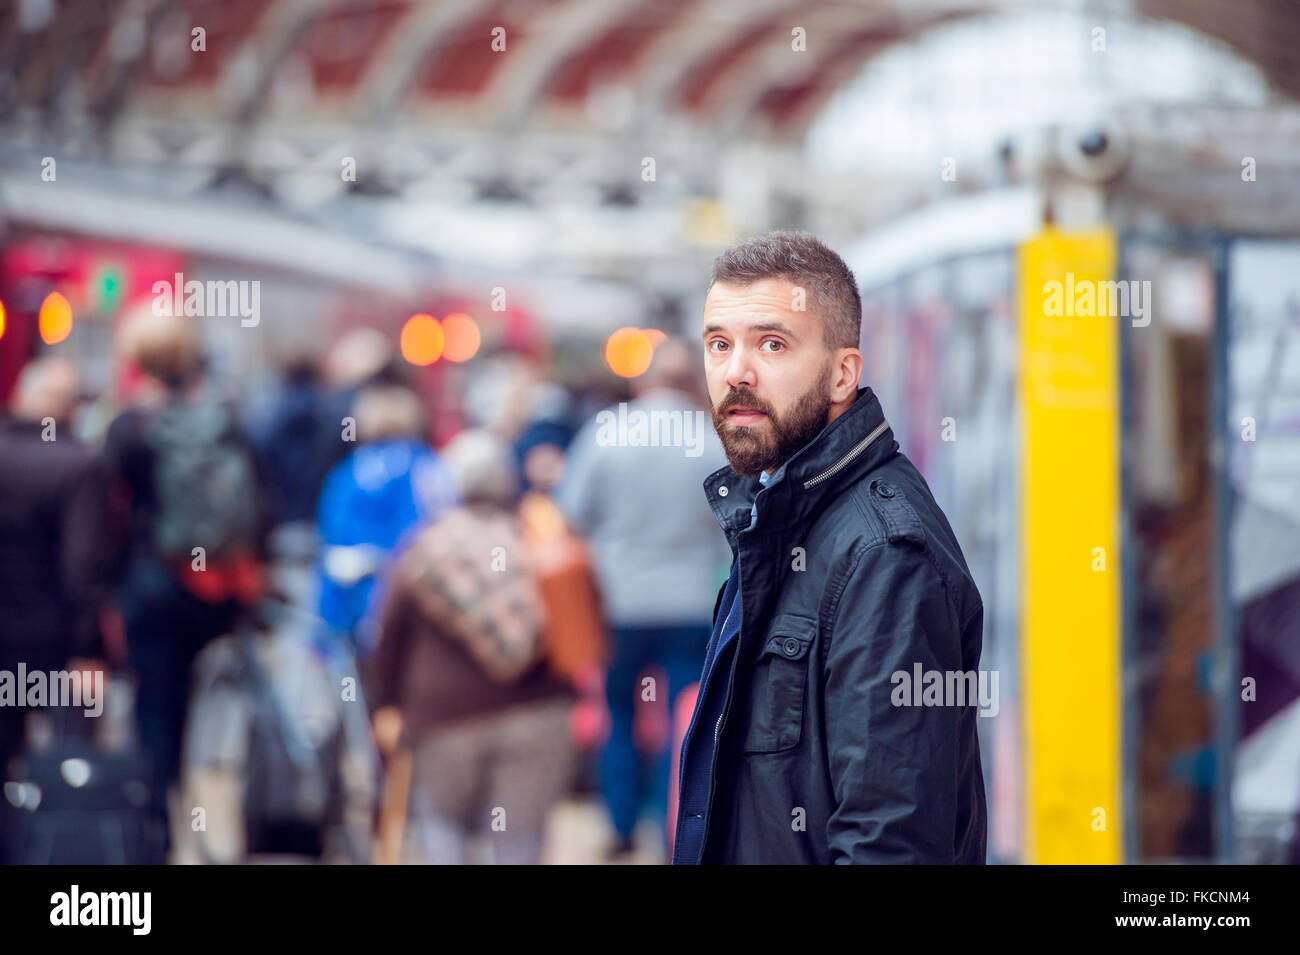 Hipster man waiting at the crowded train station - Stock Image